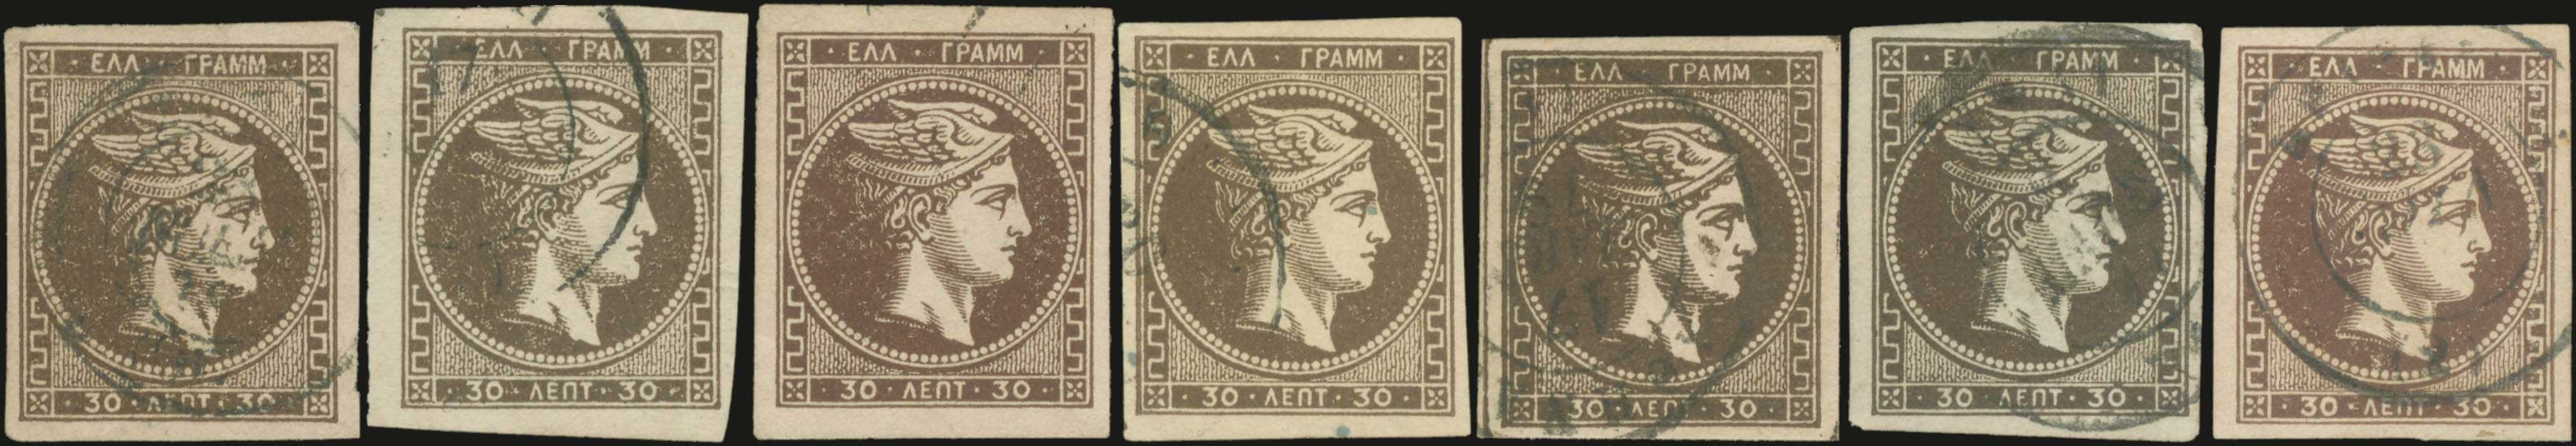 Lot 192 - -  LARGE HERMES HEAD 1876/77 athens printing -  A. Karamitsos Postal & Live Internet Auction 677